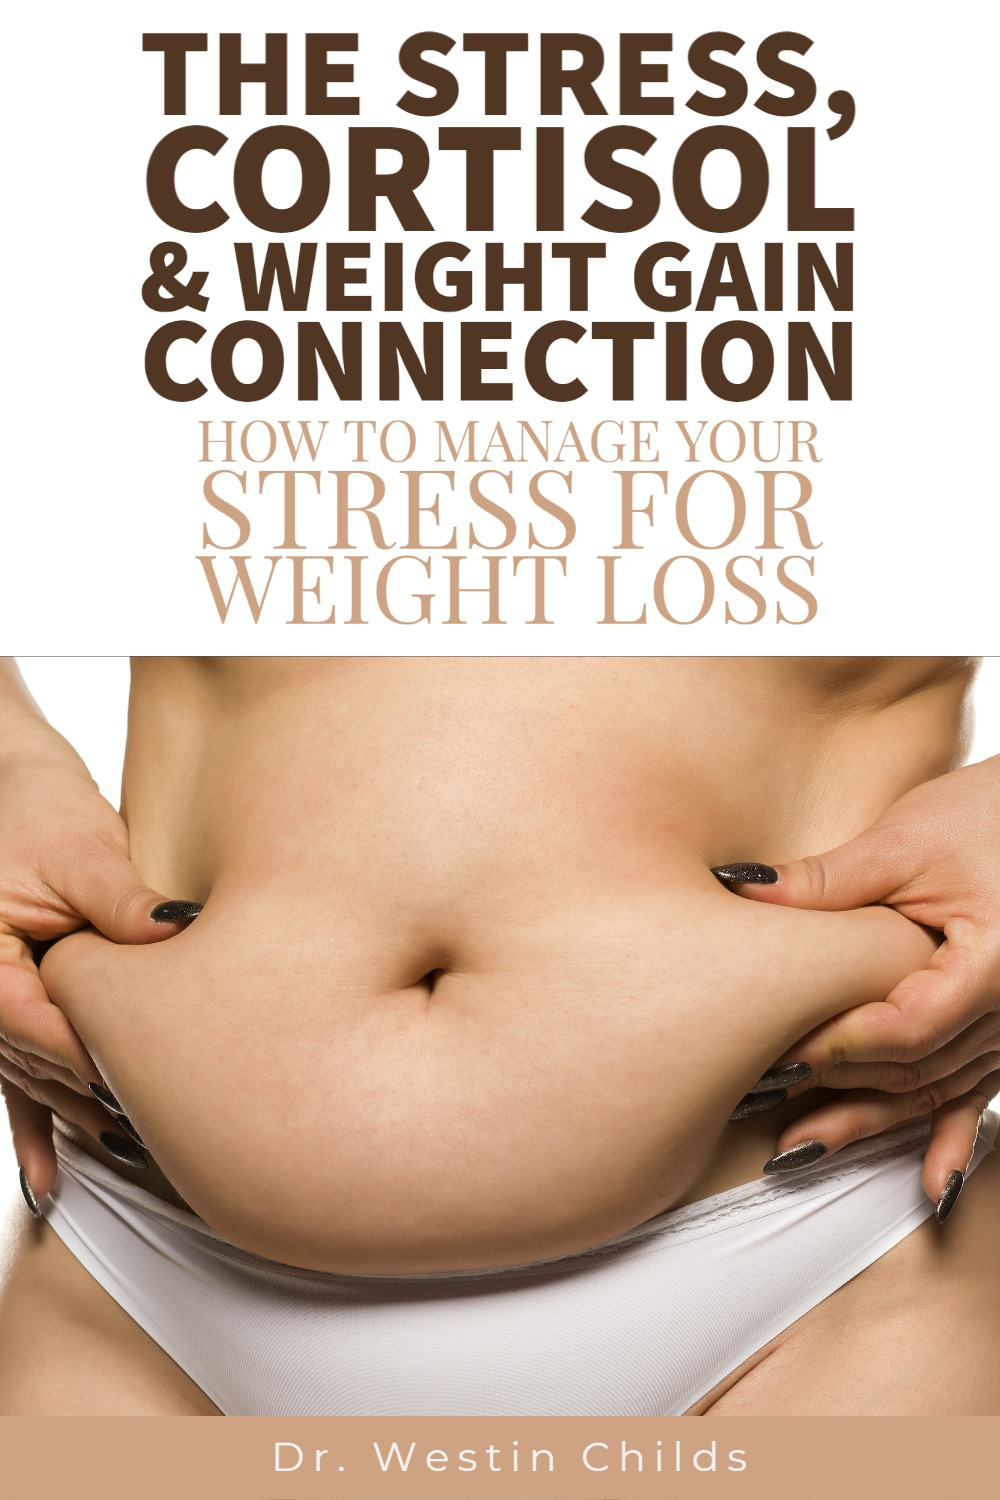 the connection between stress and weight gain